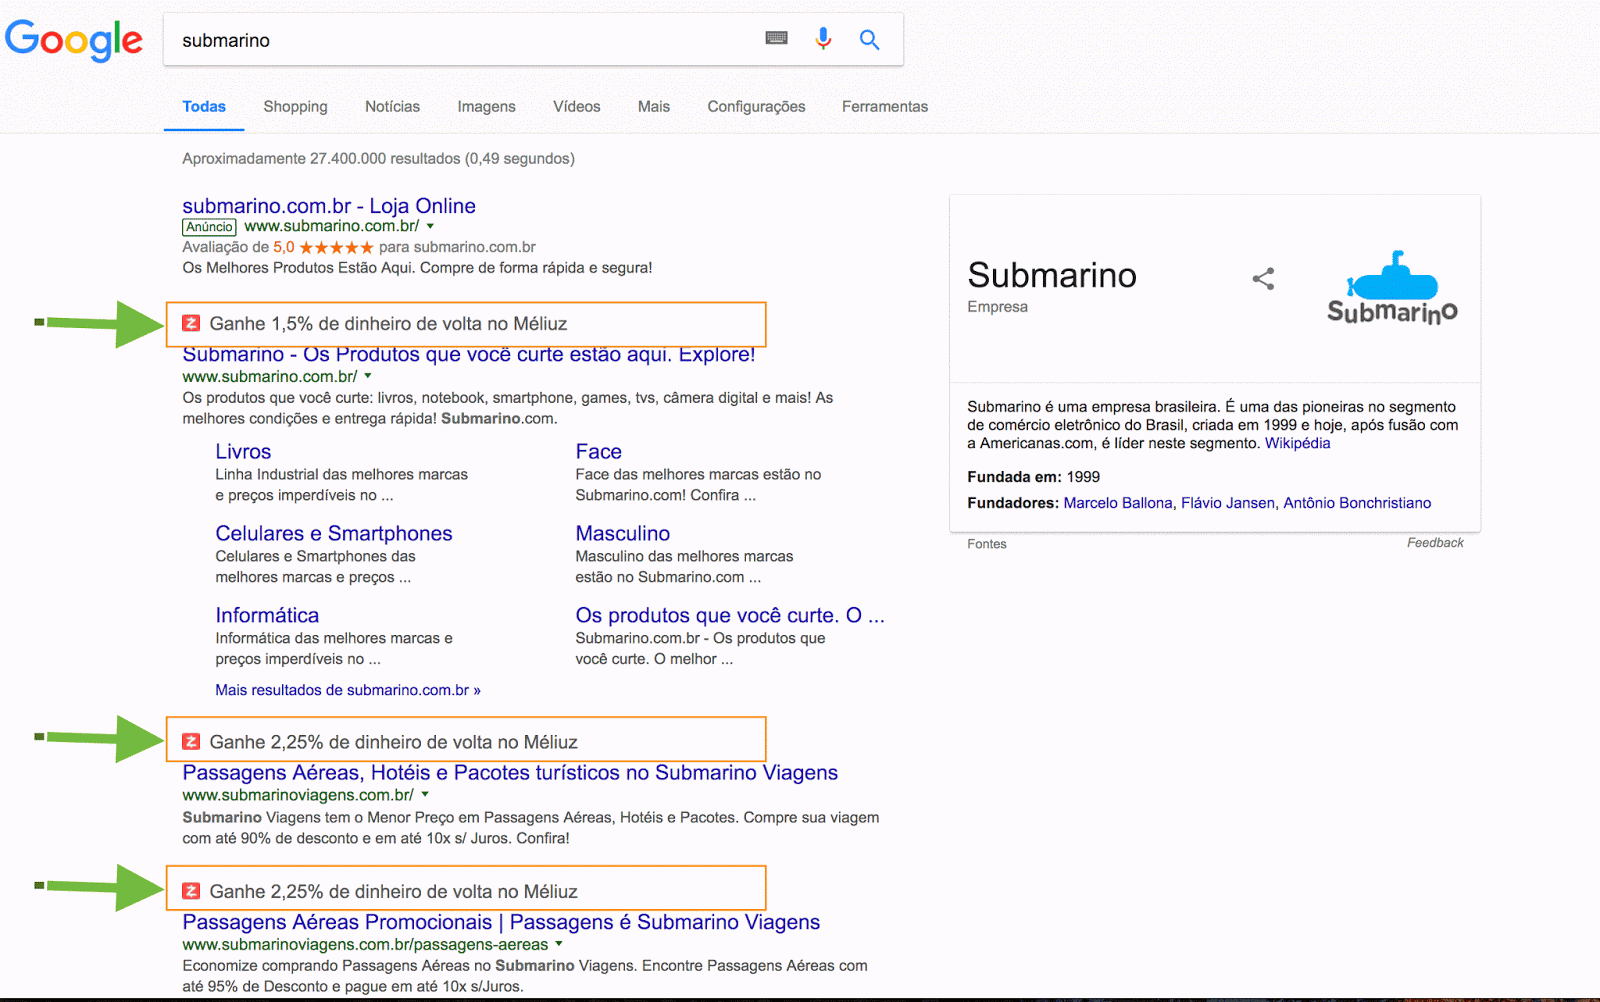 inject content into google search page result - Isn't it a violation